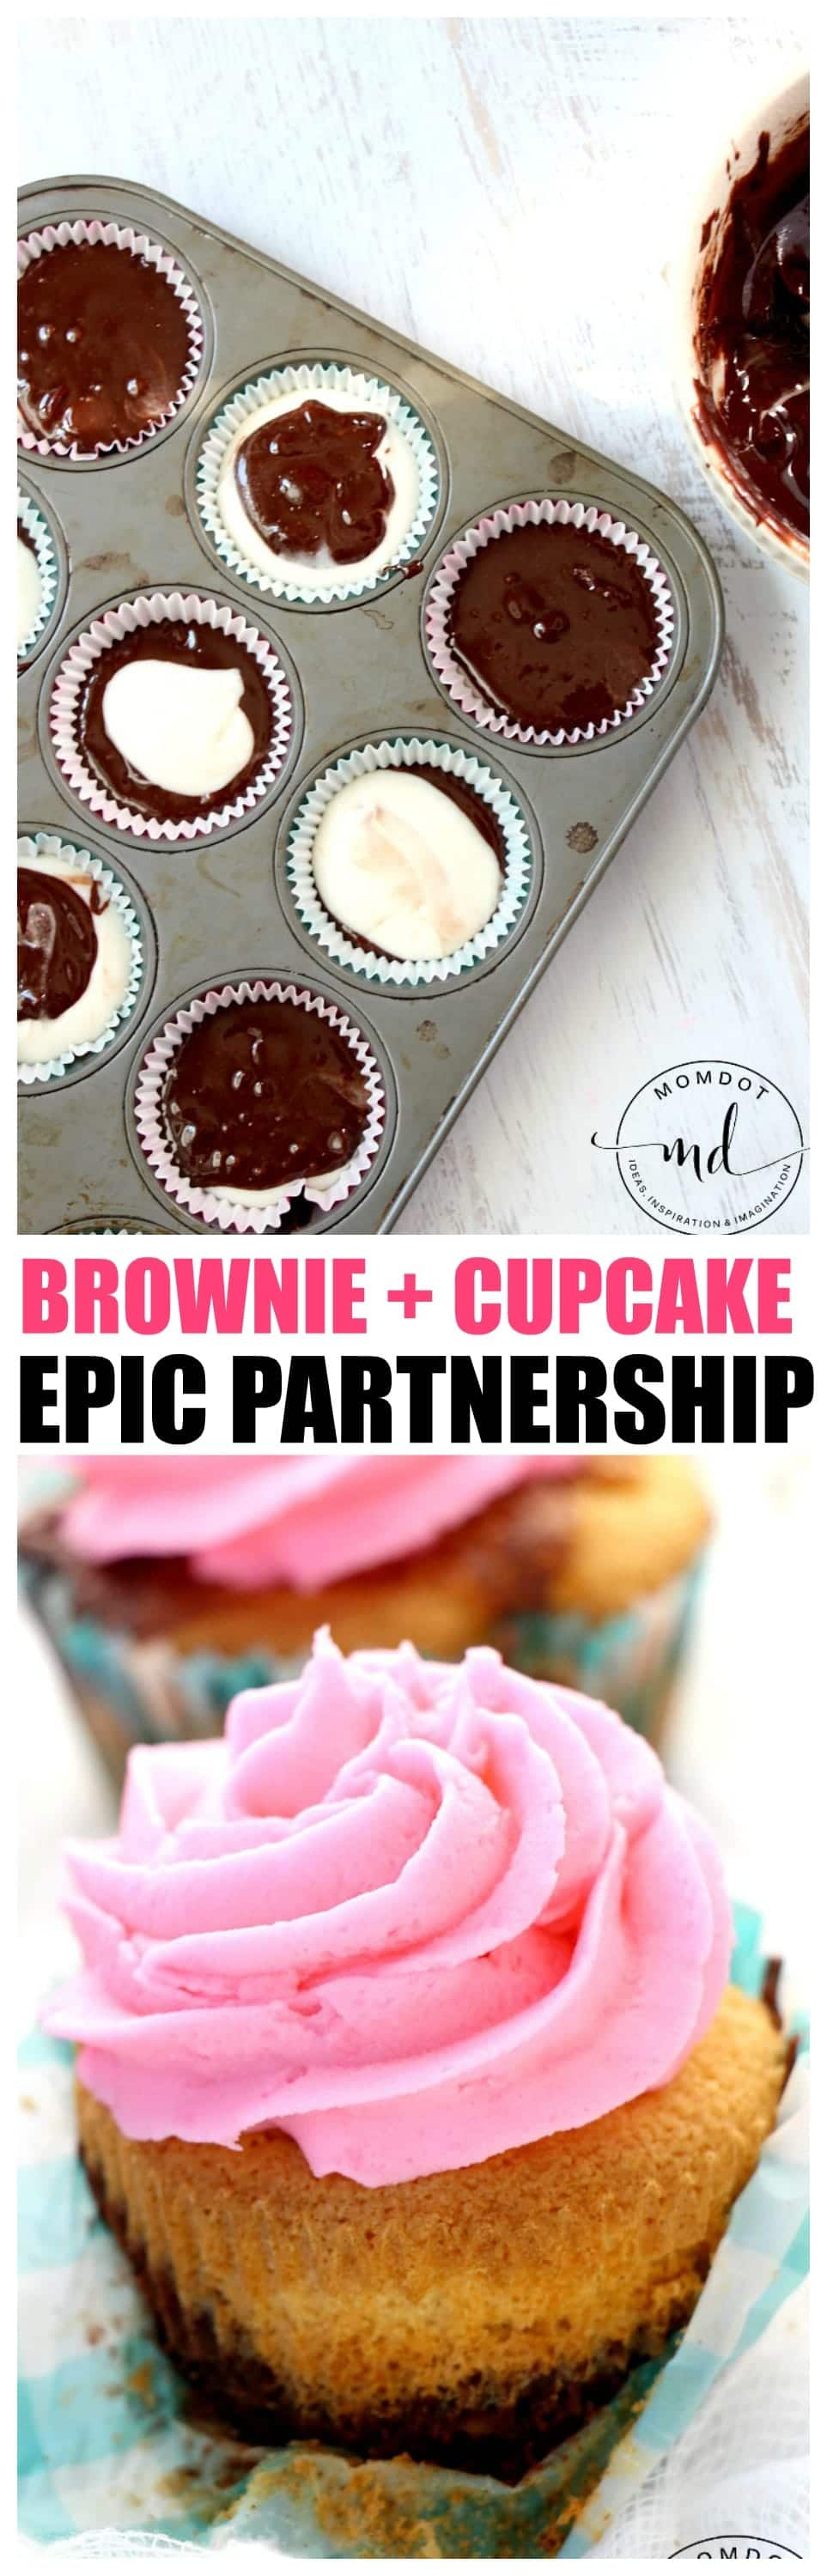 Brownies + Cupcake Recipe, Skip Brookies, Combine Delicious Brownie batter and cupcake batter to create an EPIC partnership